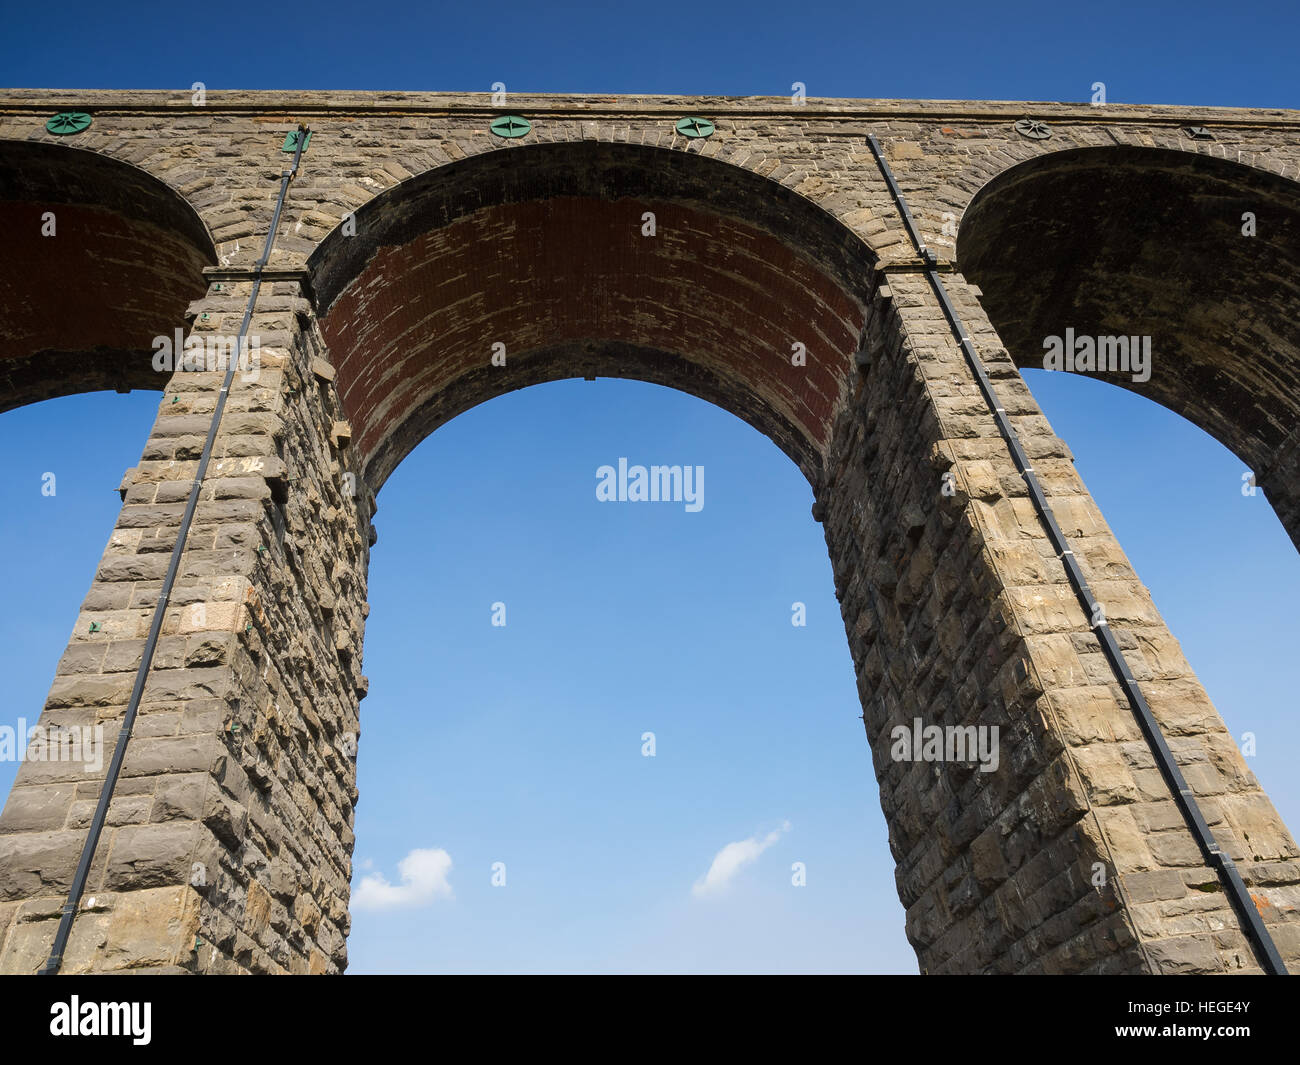 The Ribblehead Viaduct or Batty Moss Viaduct carries the Settle-Carlisle Railway across Batty Moss in the valley - Stock Image